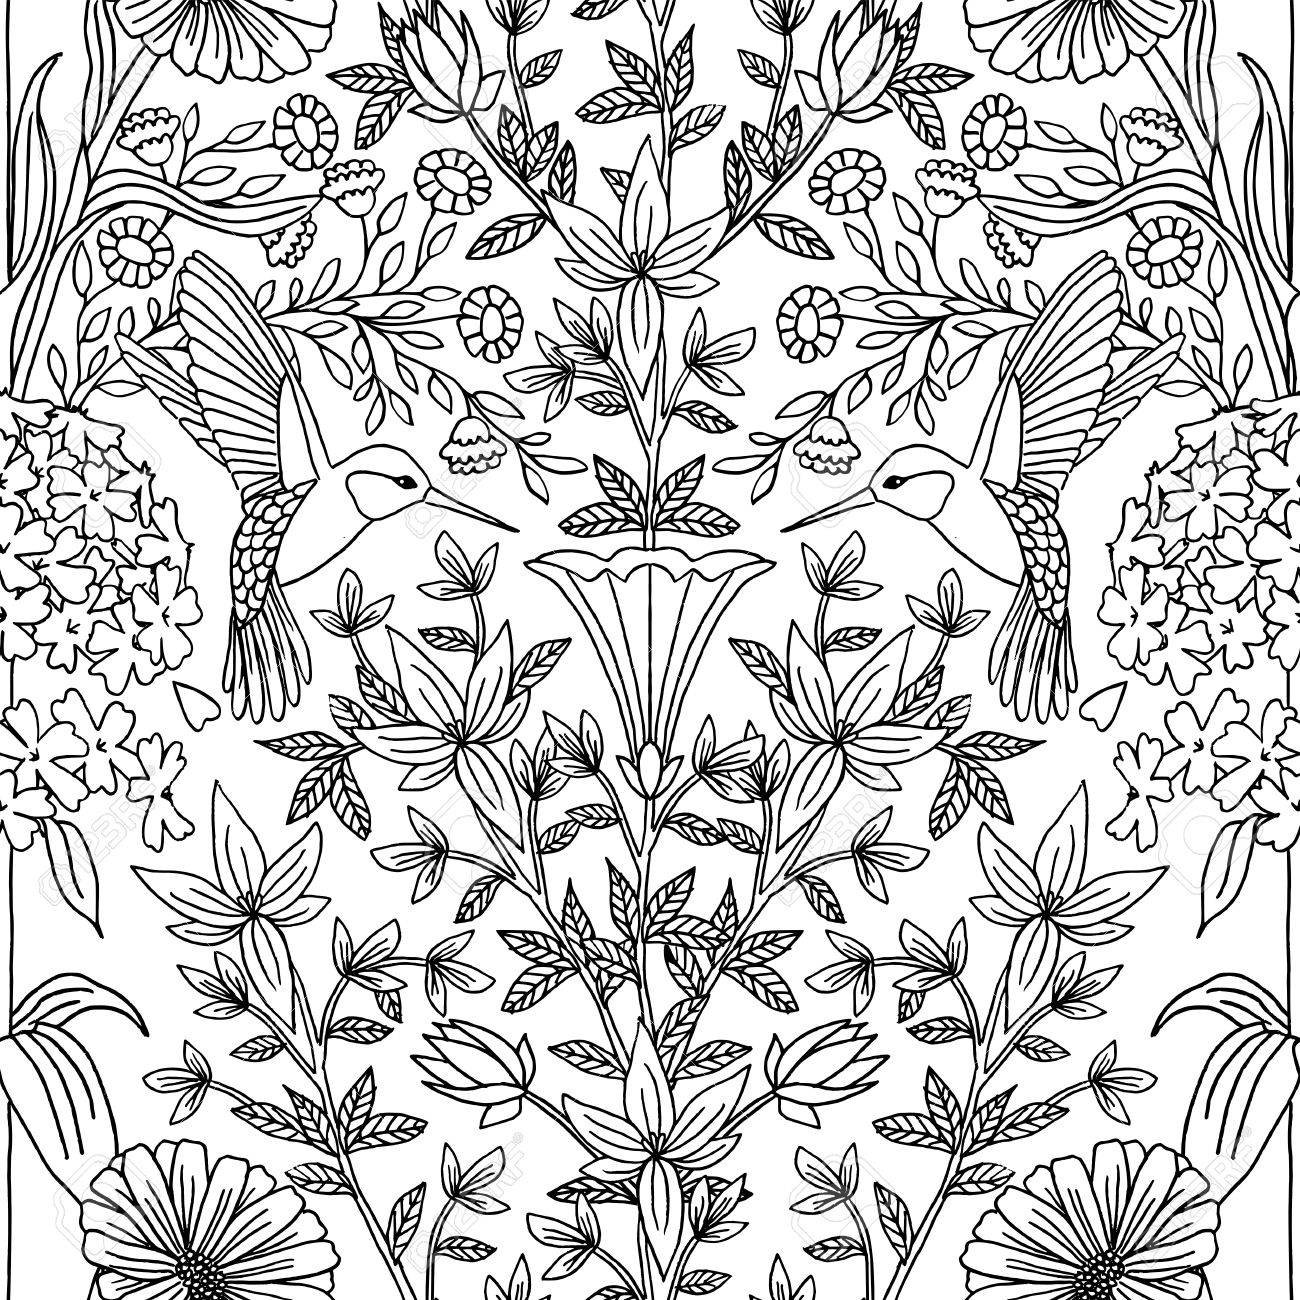 Hand drawn seamless black and white pattern with hummingbirds and flowers - 57503787